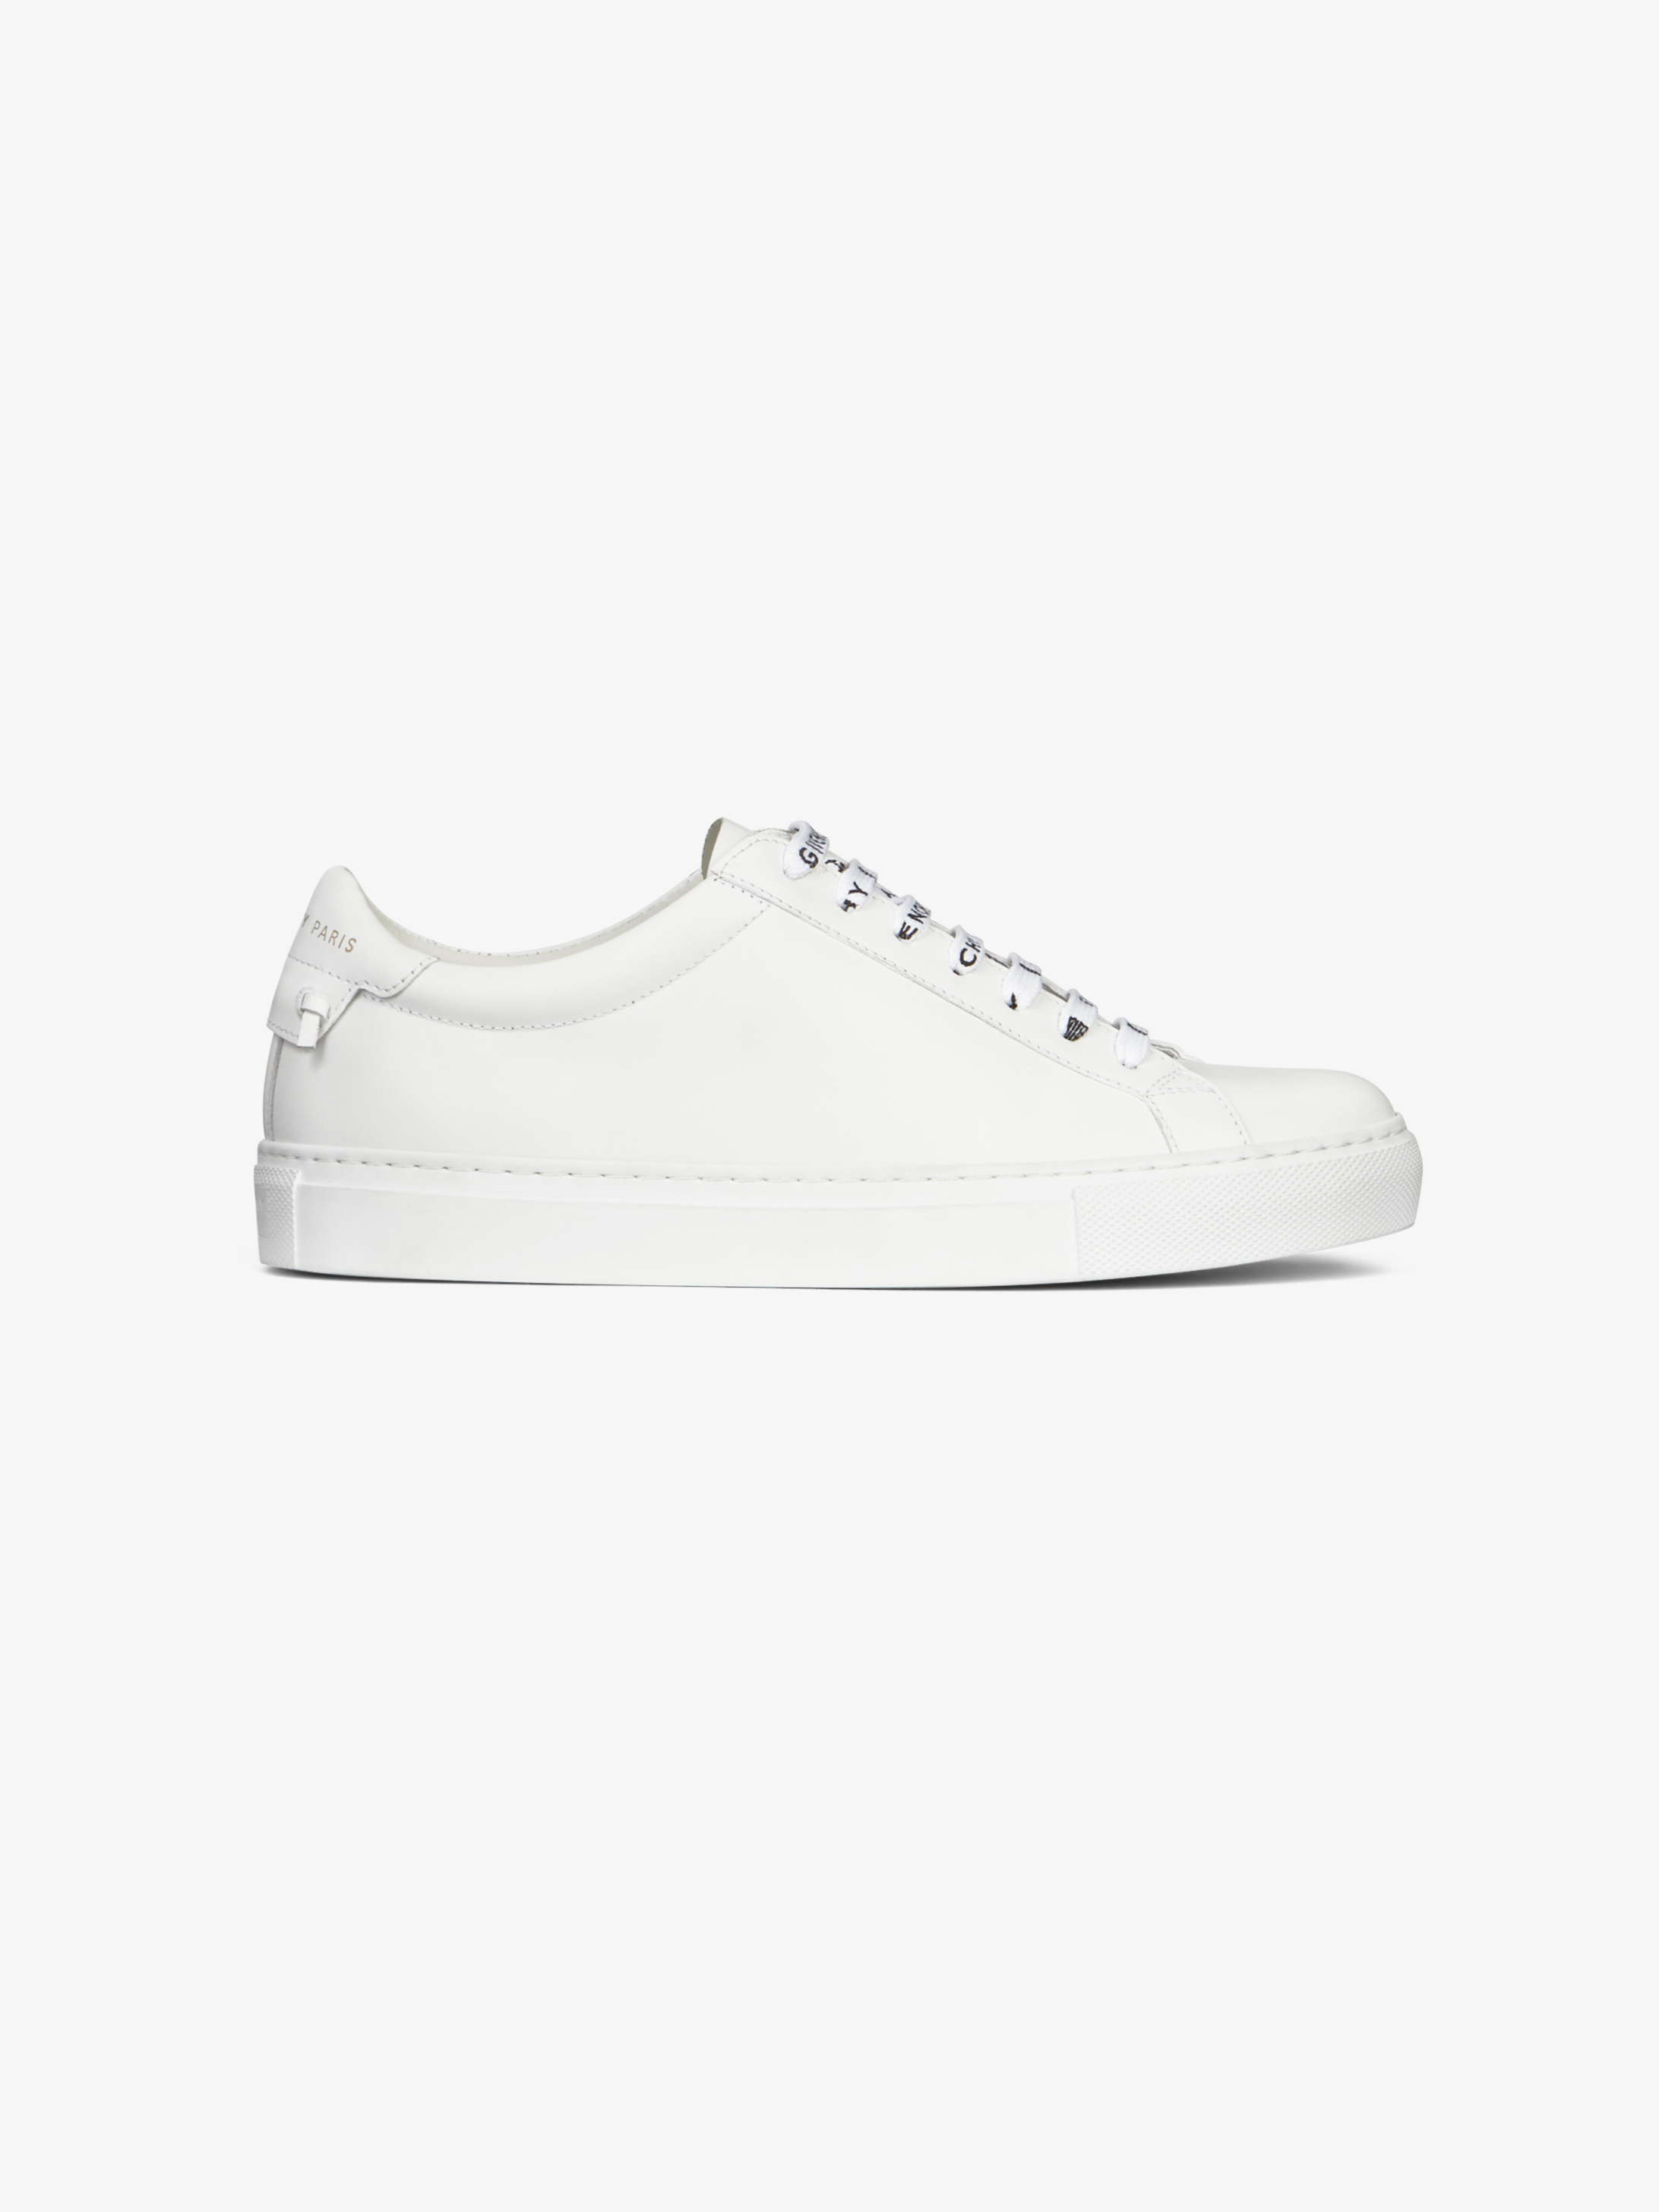 Sneakers in leather with GIVENCHY laces